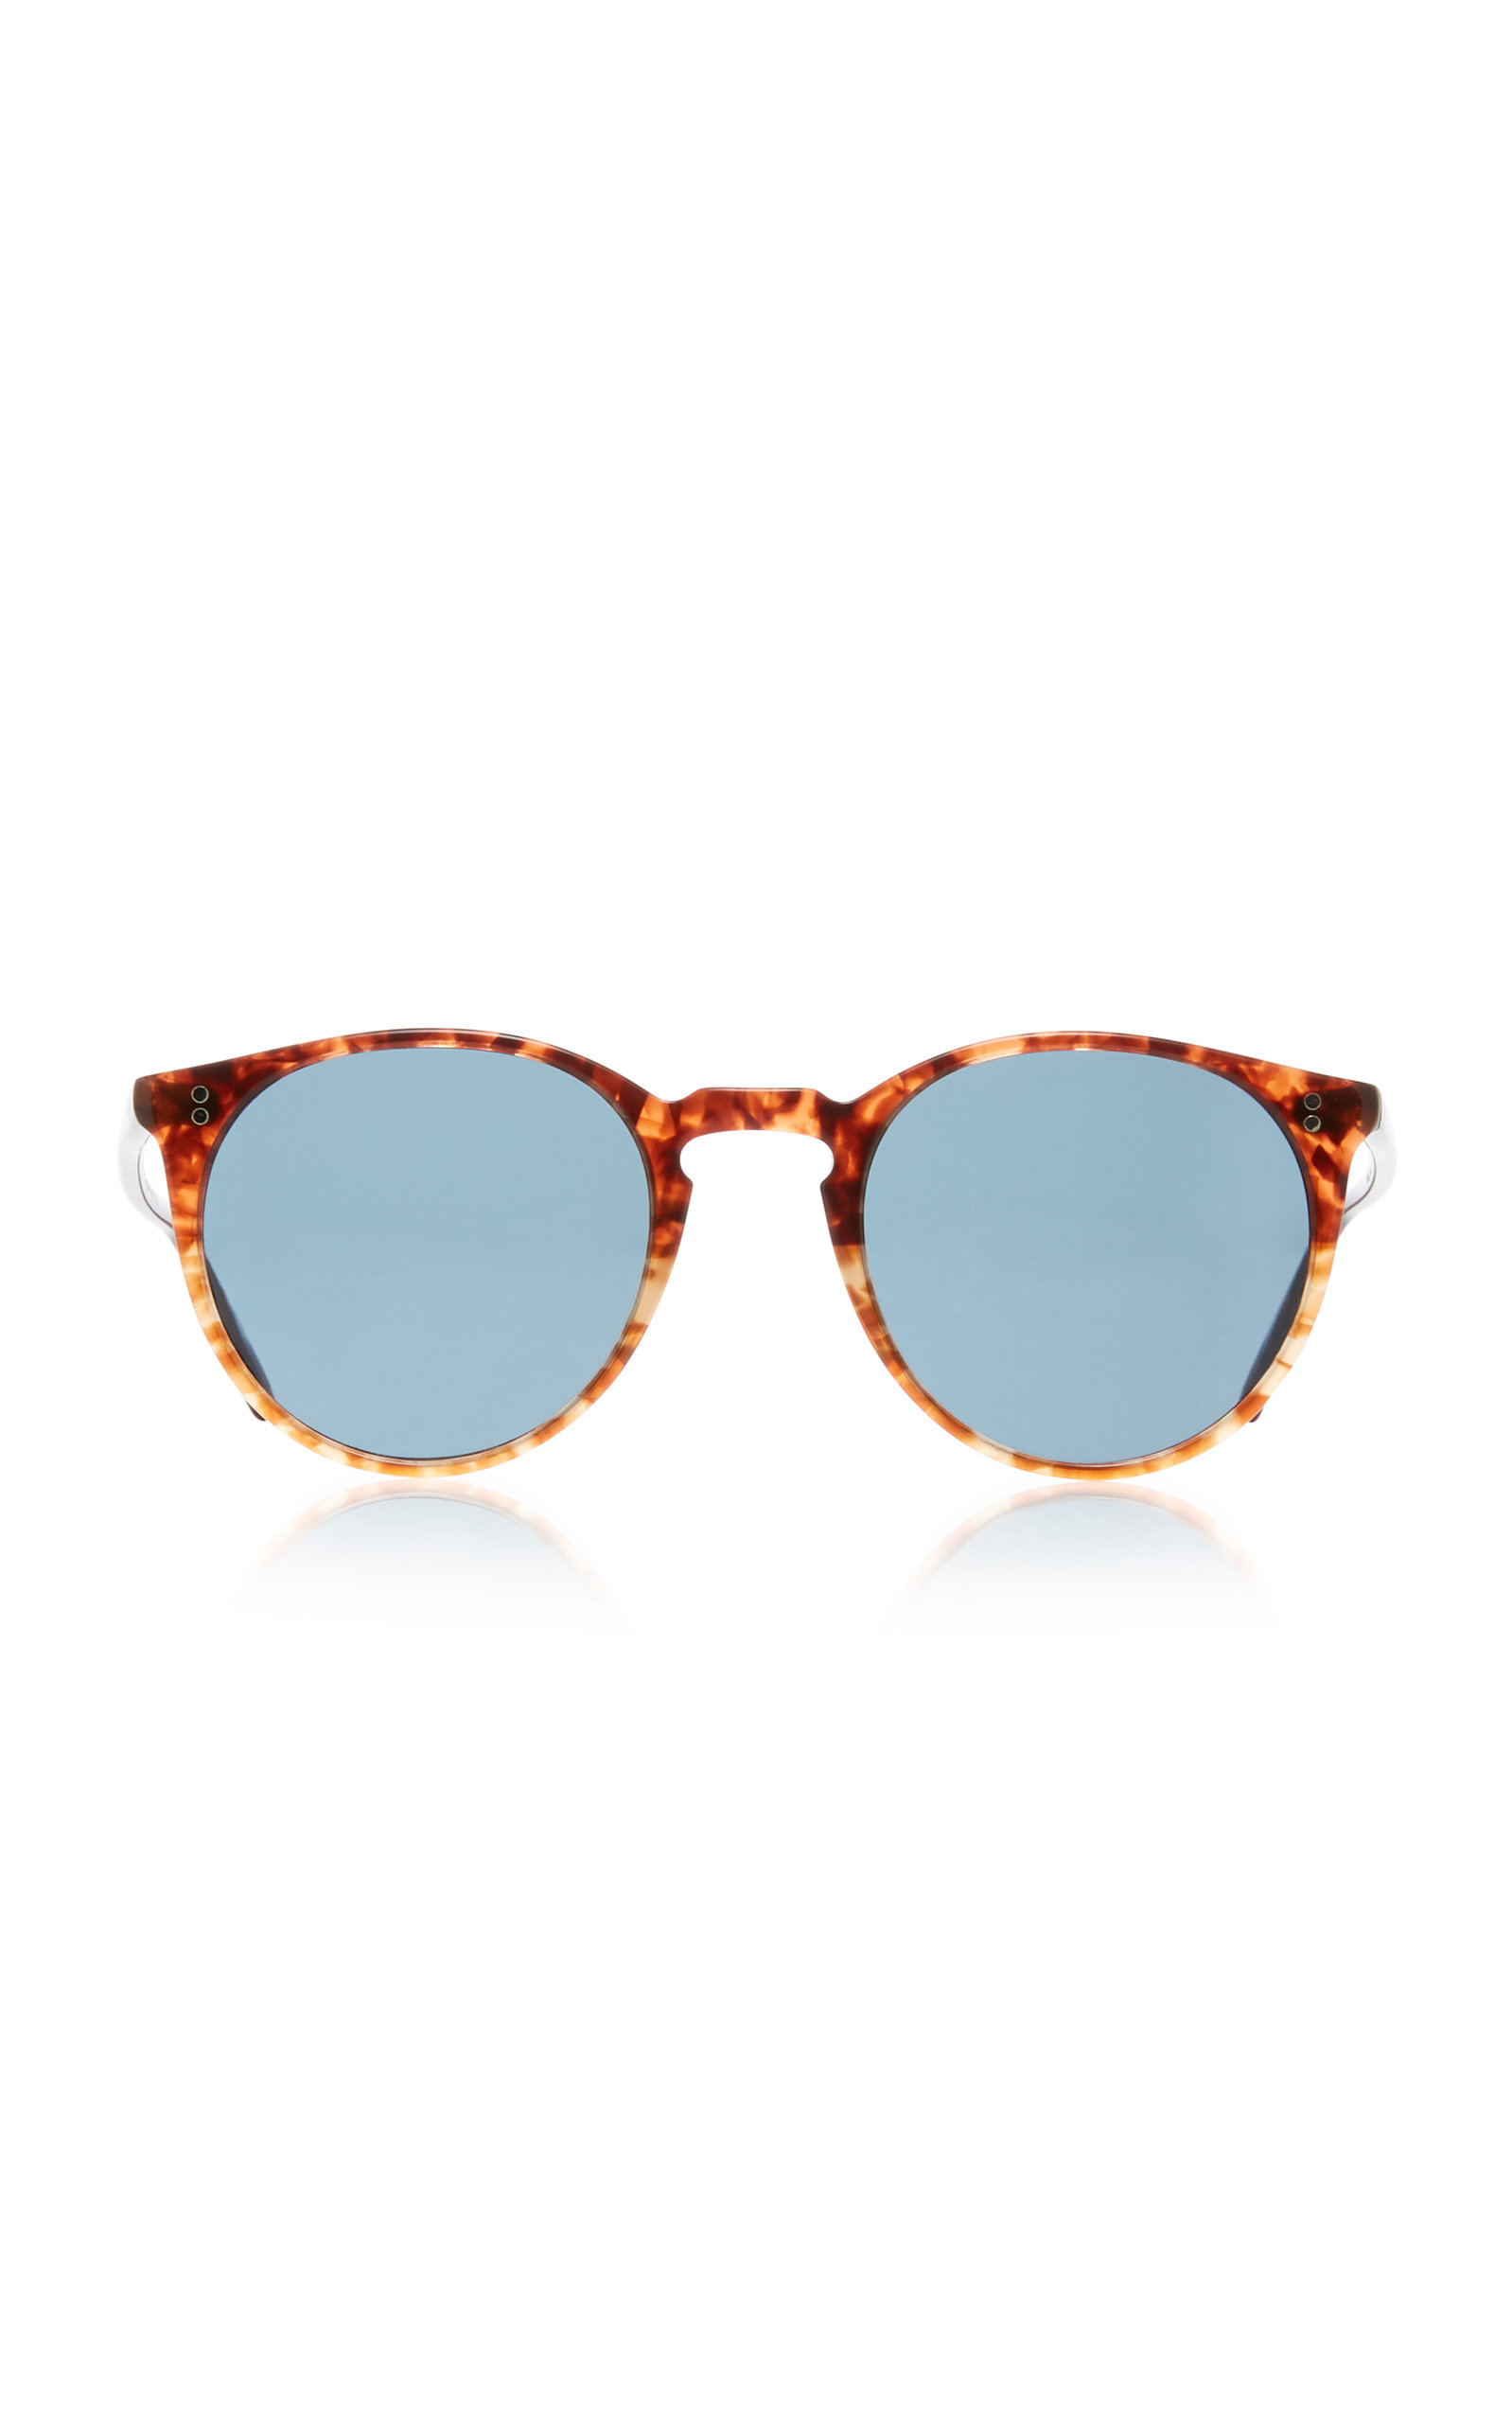 4d4dc67736 O'Malley Round Acetate Sunglasses